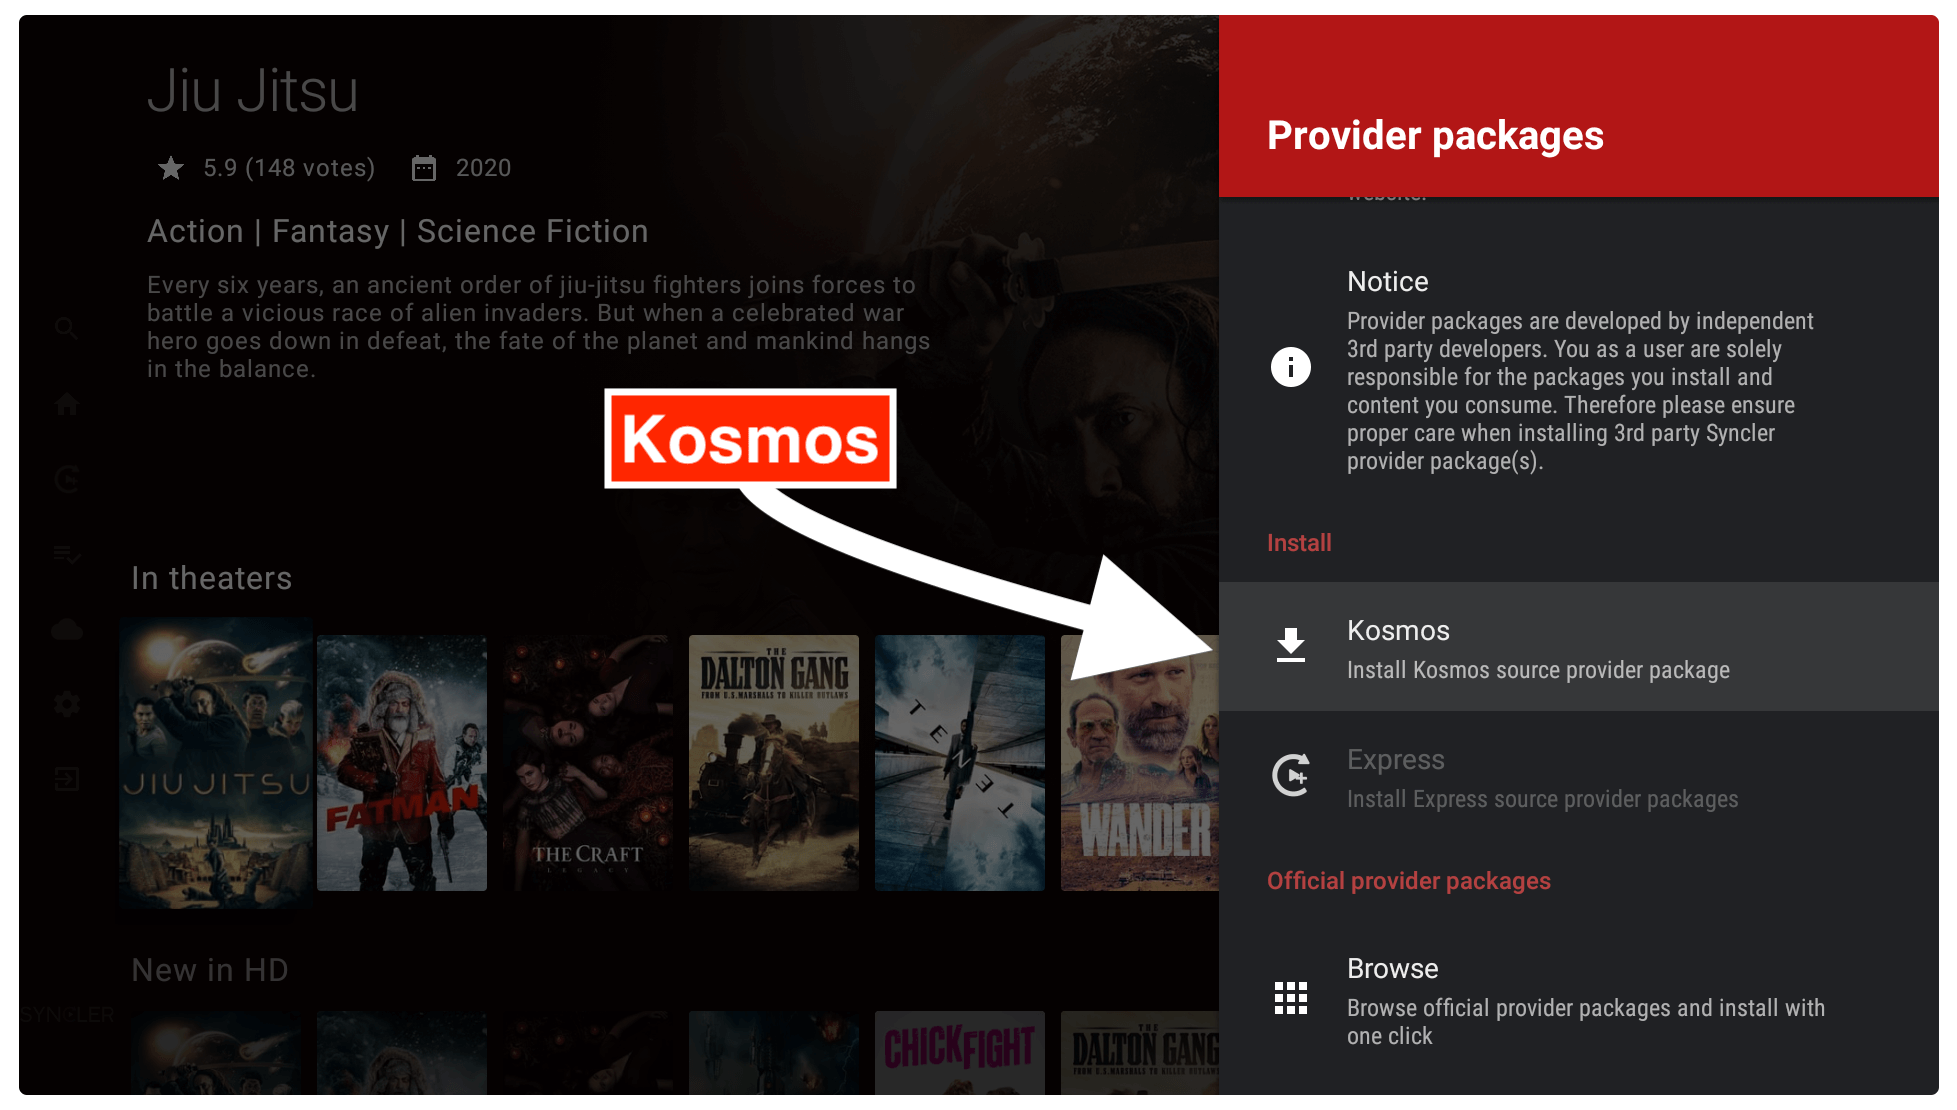 installing-kosmos-packages-syncler-on-firestick